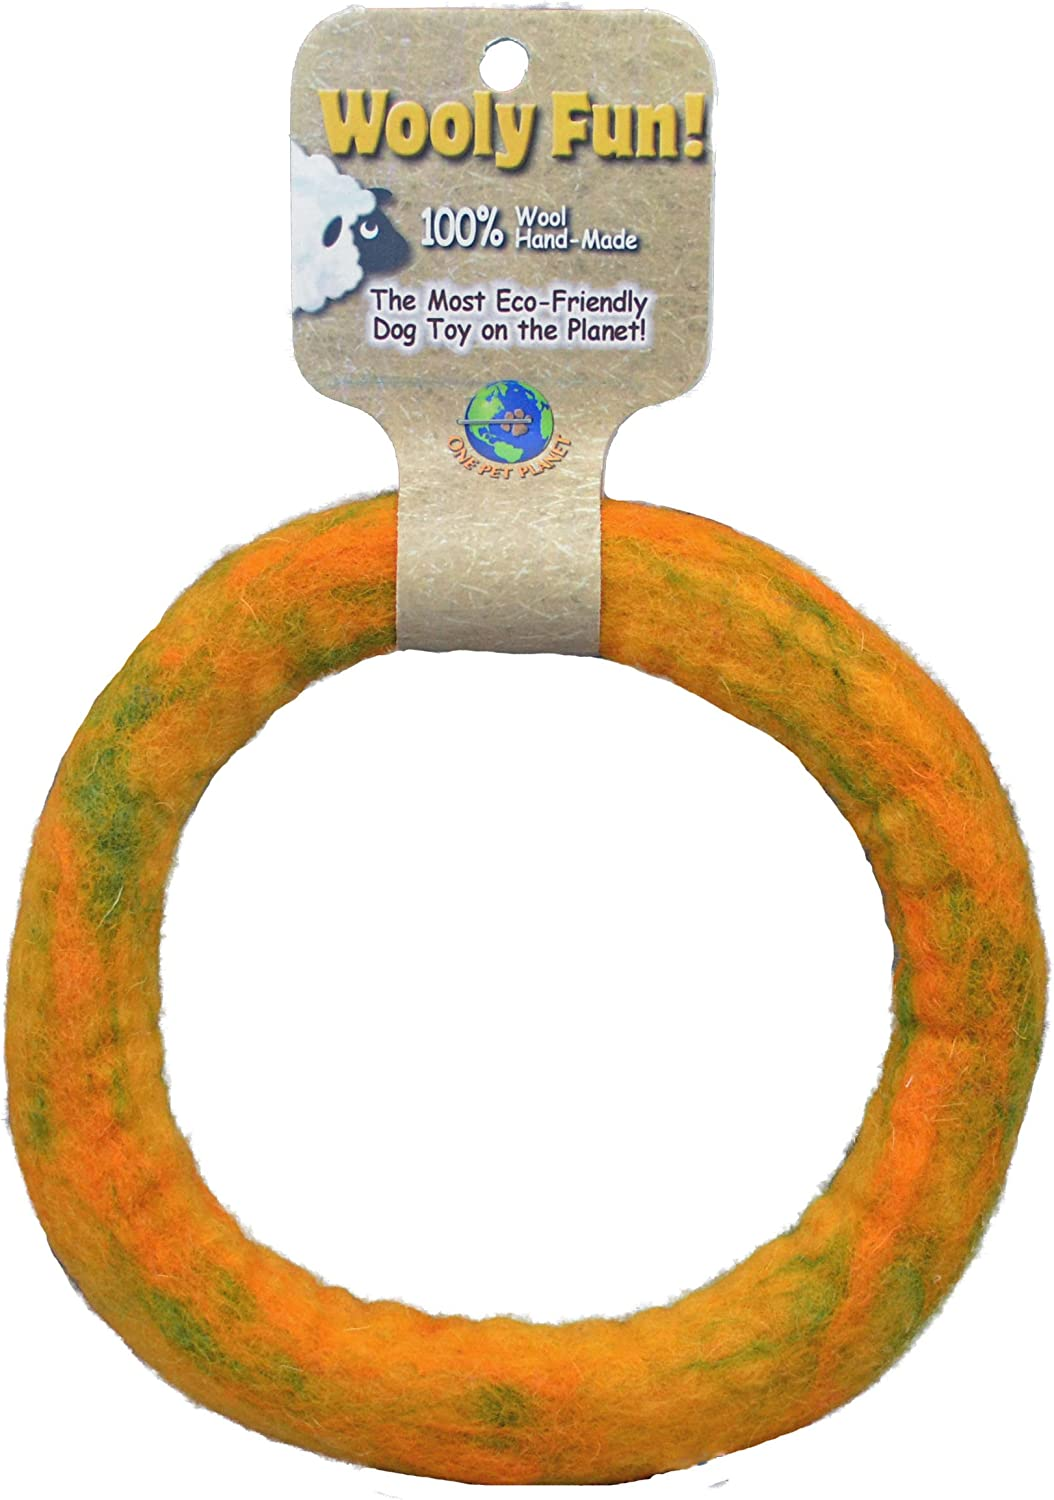 One Pet Planet Wool Dog Toy, 7Inch, Yellow